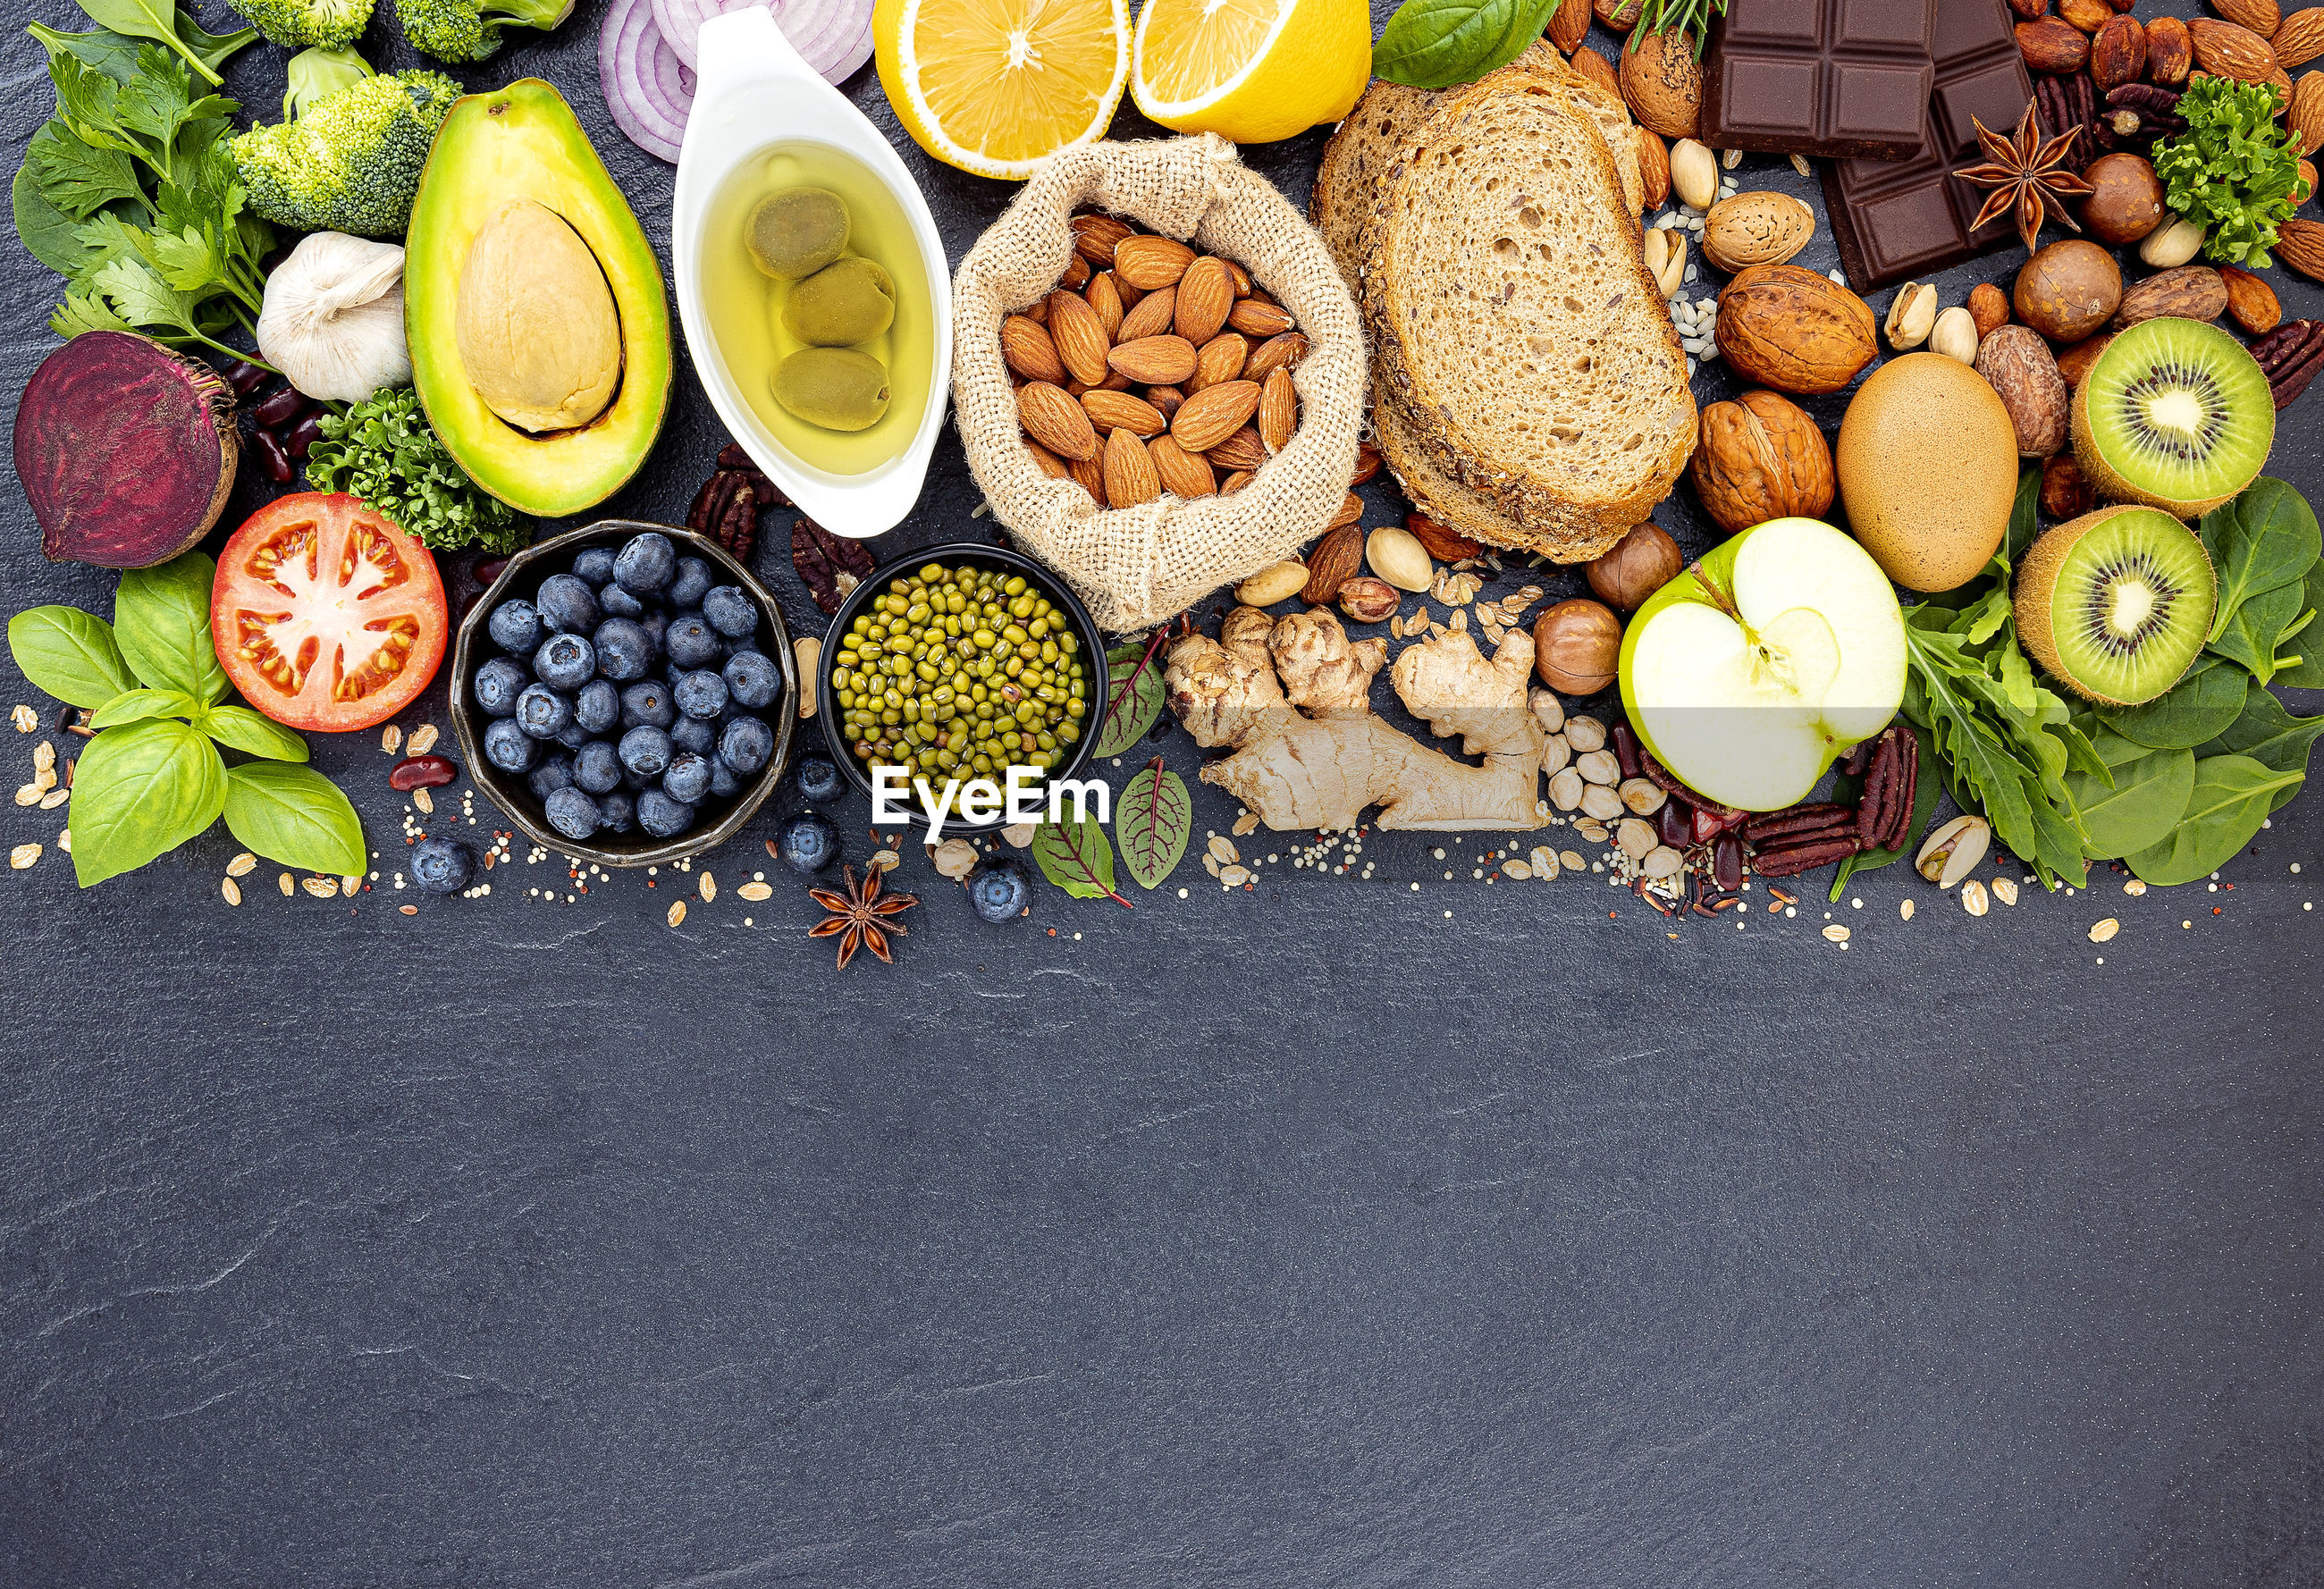 HIGH ANGLE VIEW OF FRUITS AND TABLE